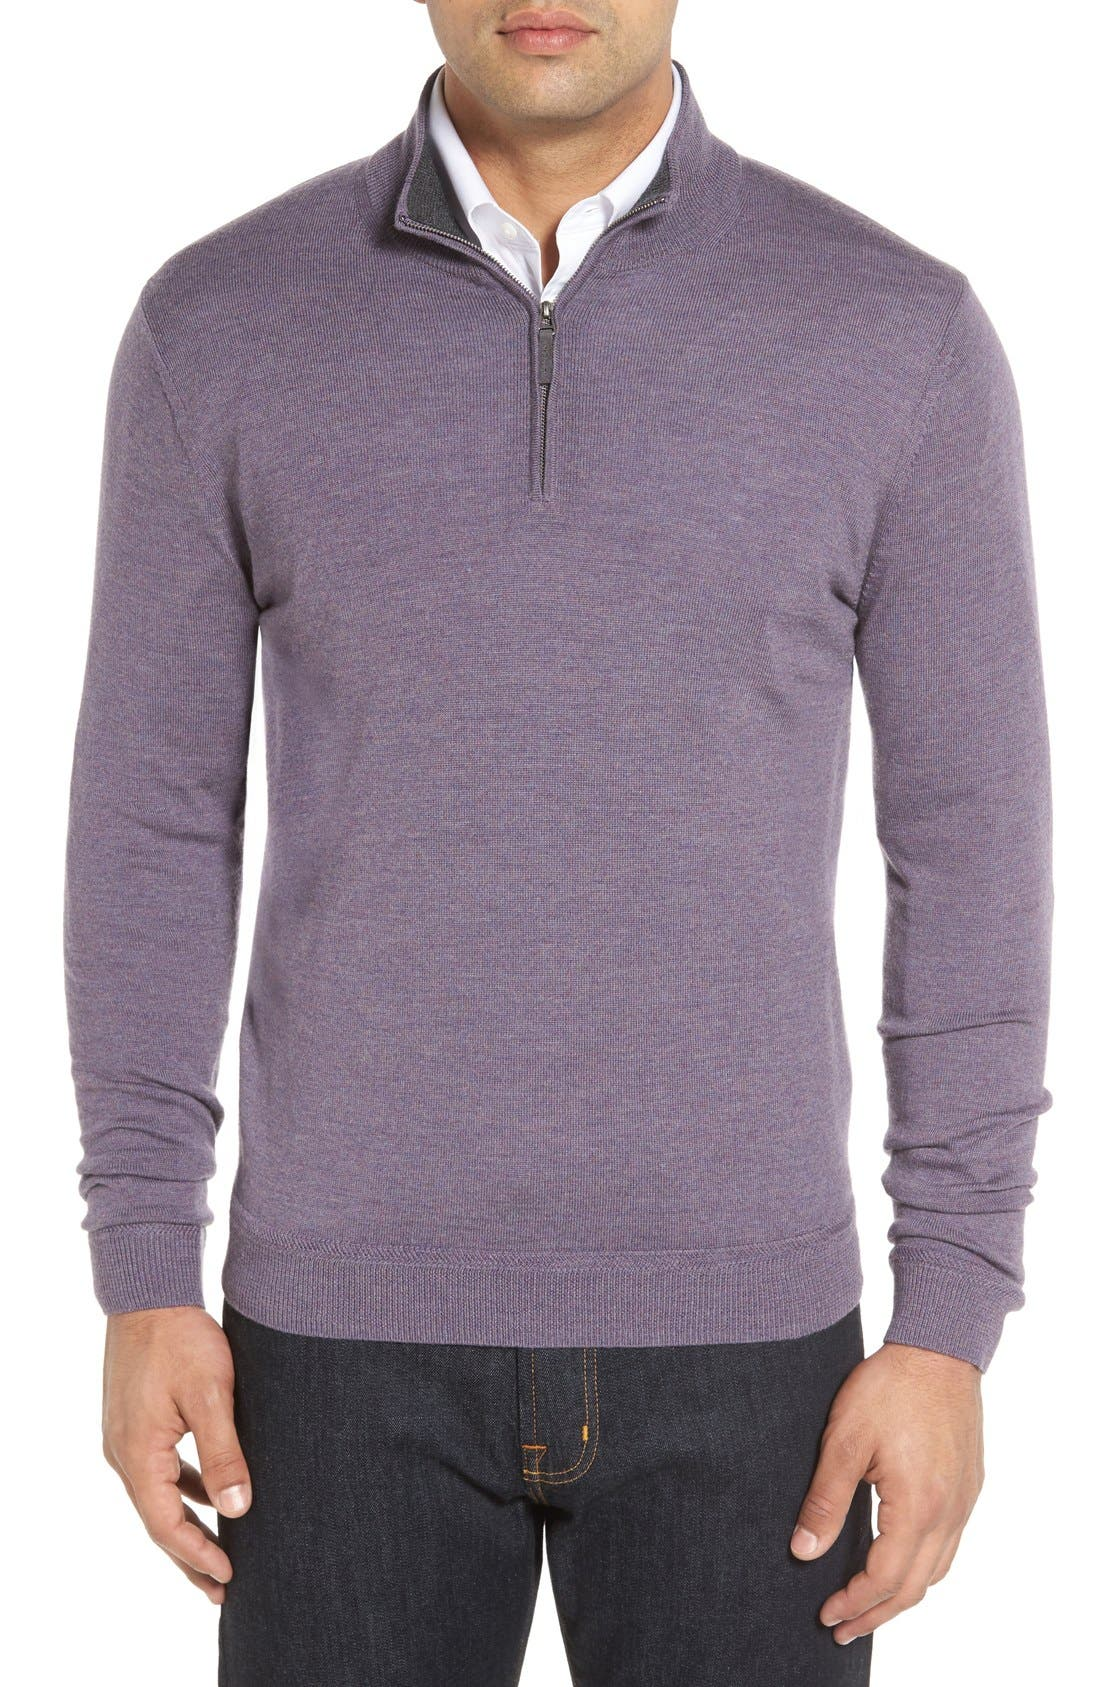 Main Image - John W. Nordstrom® Merino Wool Quarter Zip Sweater